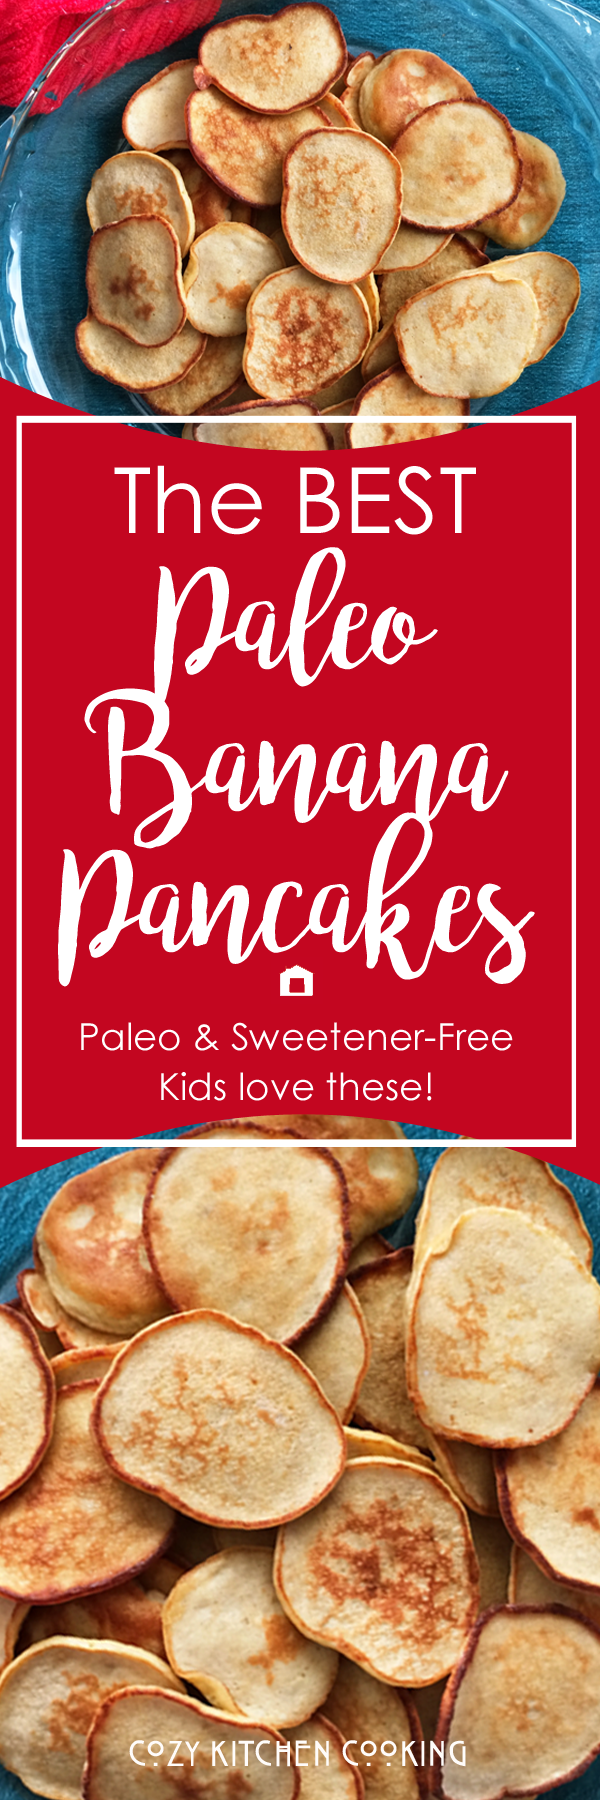 These Paleo Banana Pancakes are light & fluffy with lots of sweetness from banana. They are easy to make and kids LOVE these! Paleo, sugar-free, grain-free